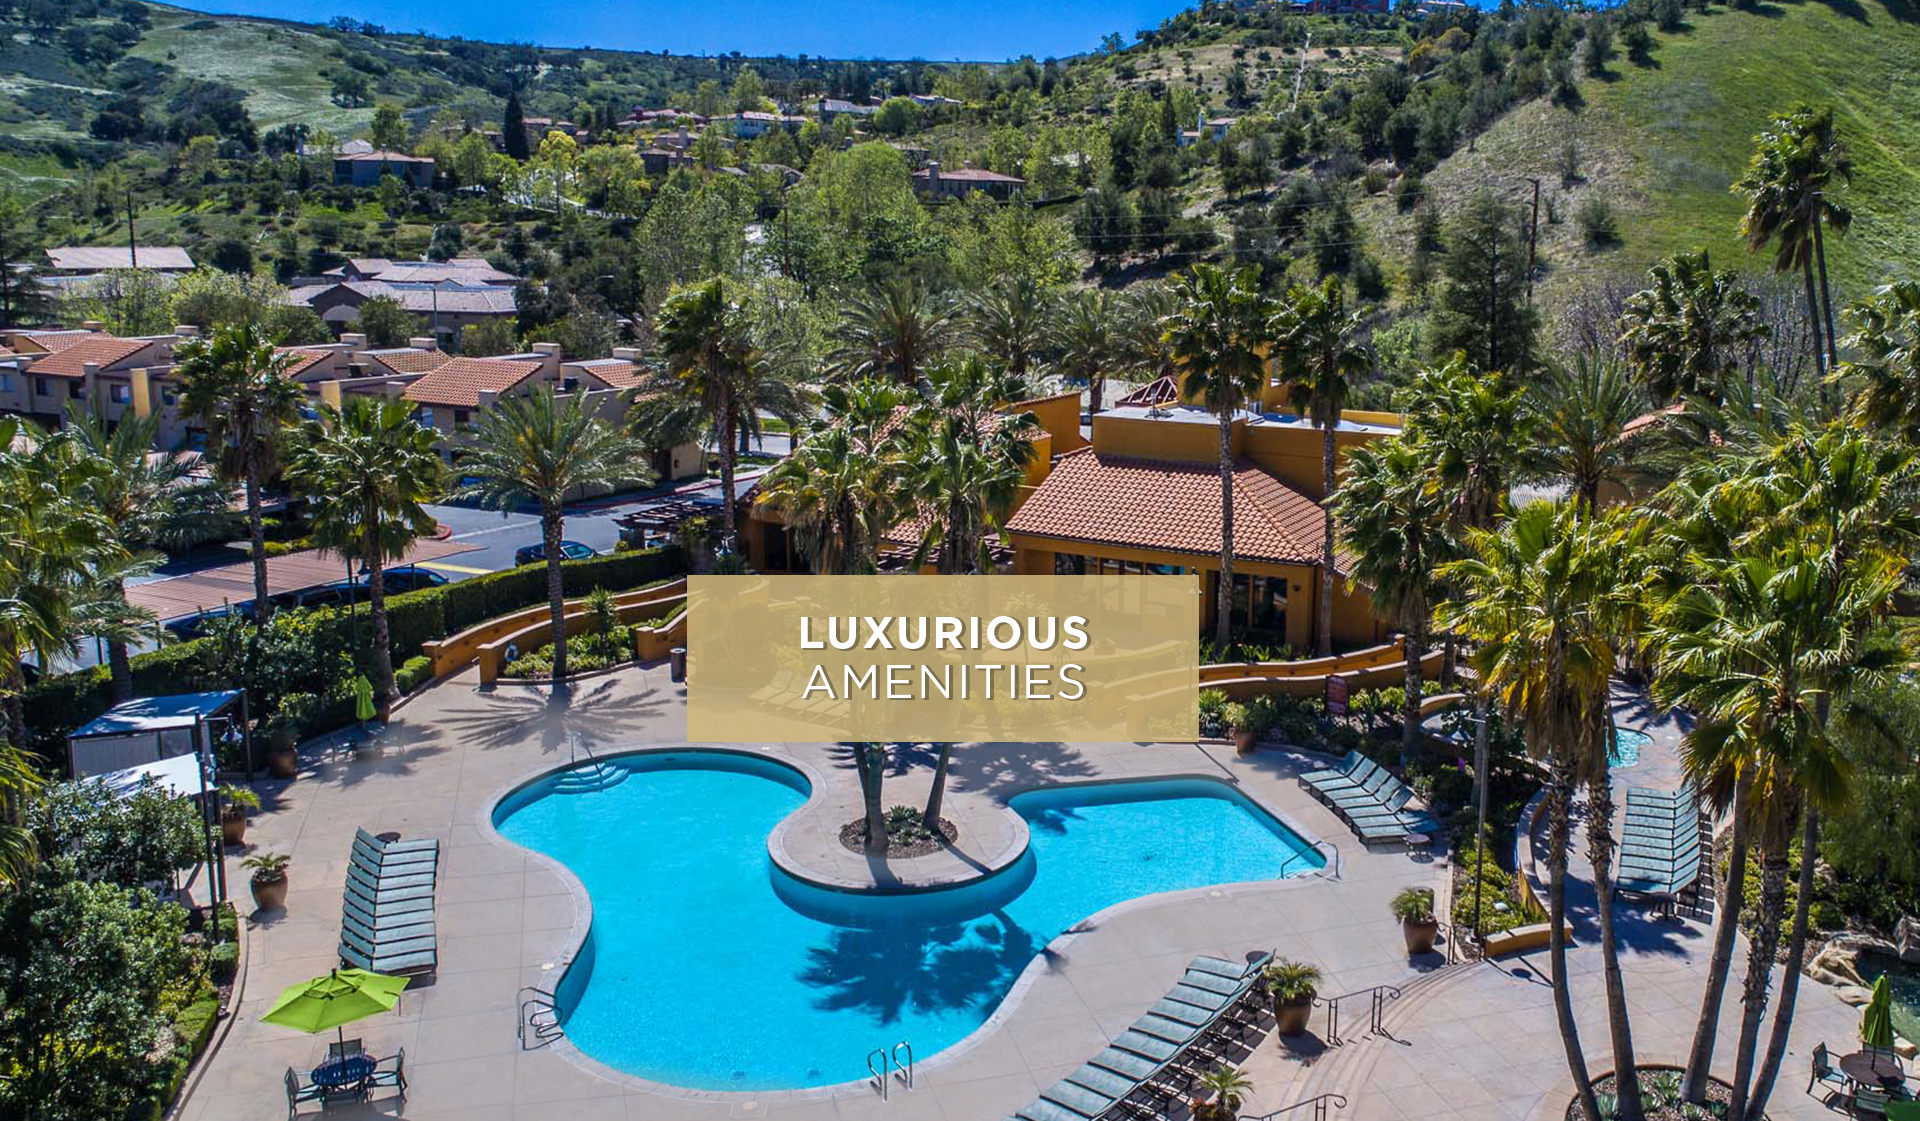 Malibu Canyon Apartments- Pool View - Calabasas, CA